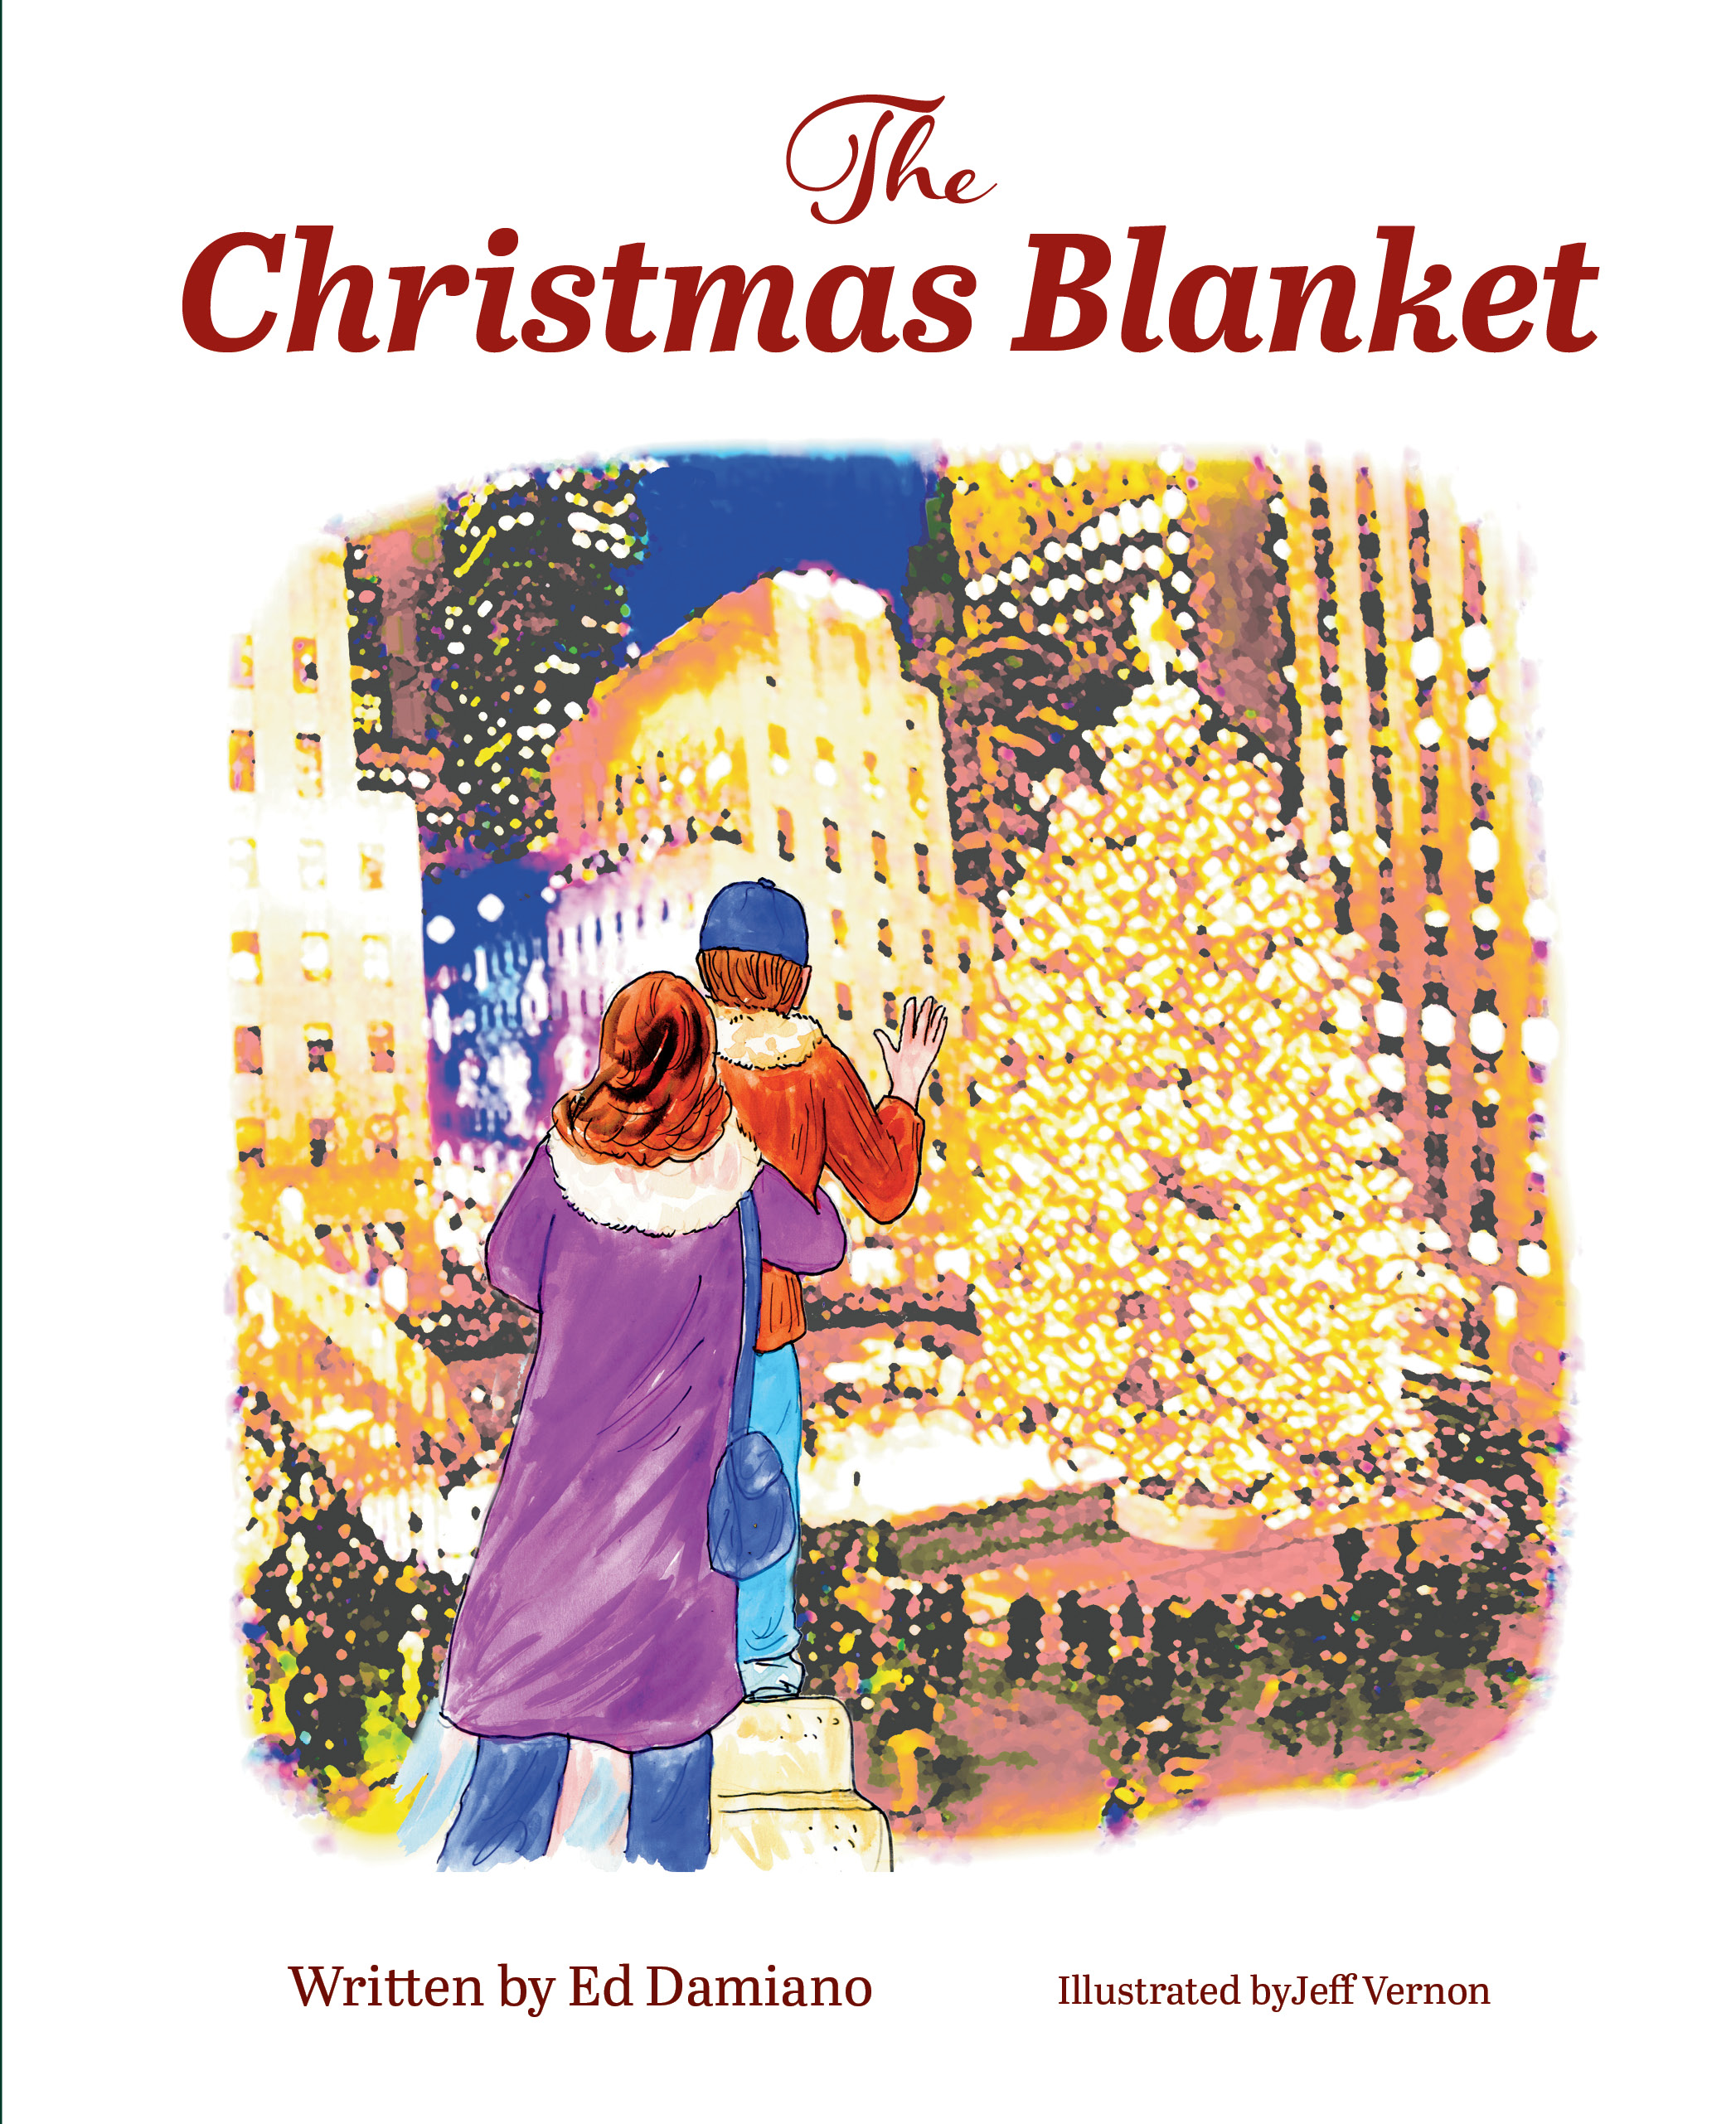 TheChristmasBlanket_Amazon